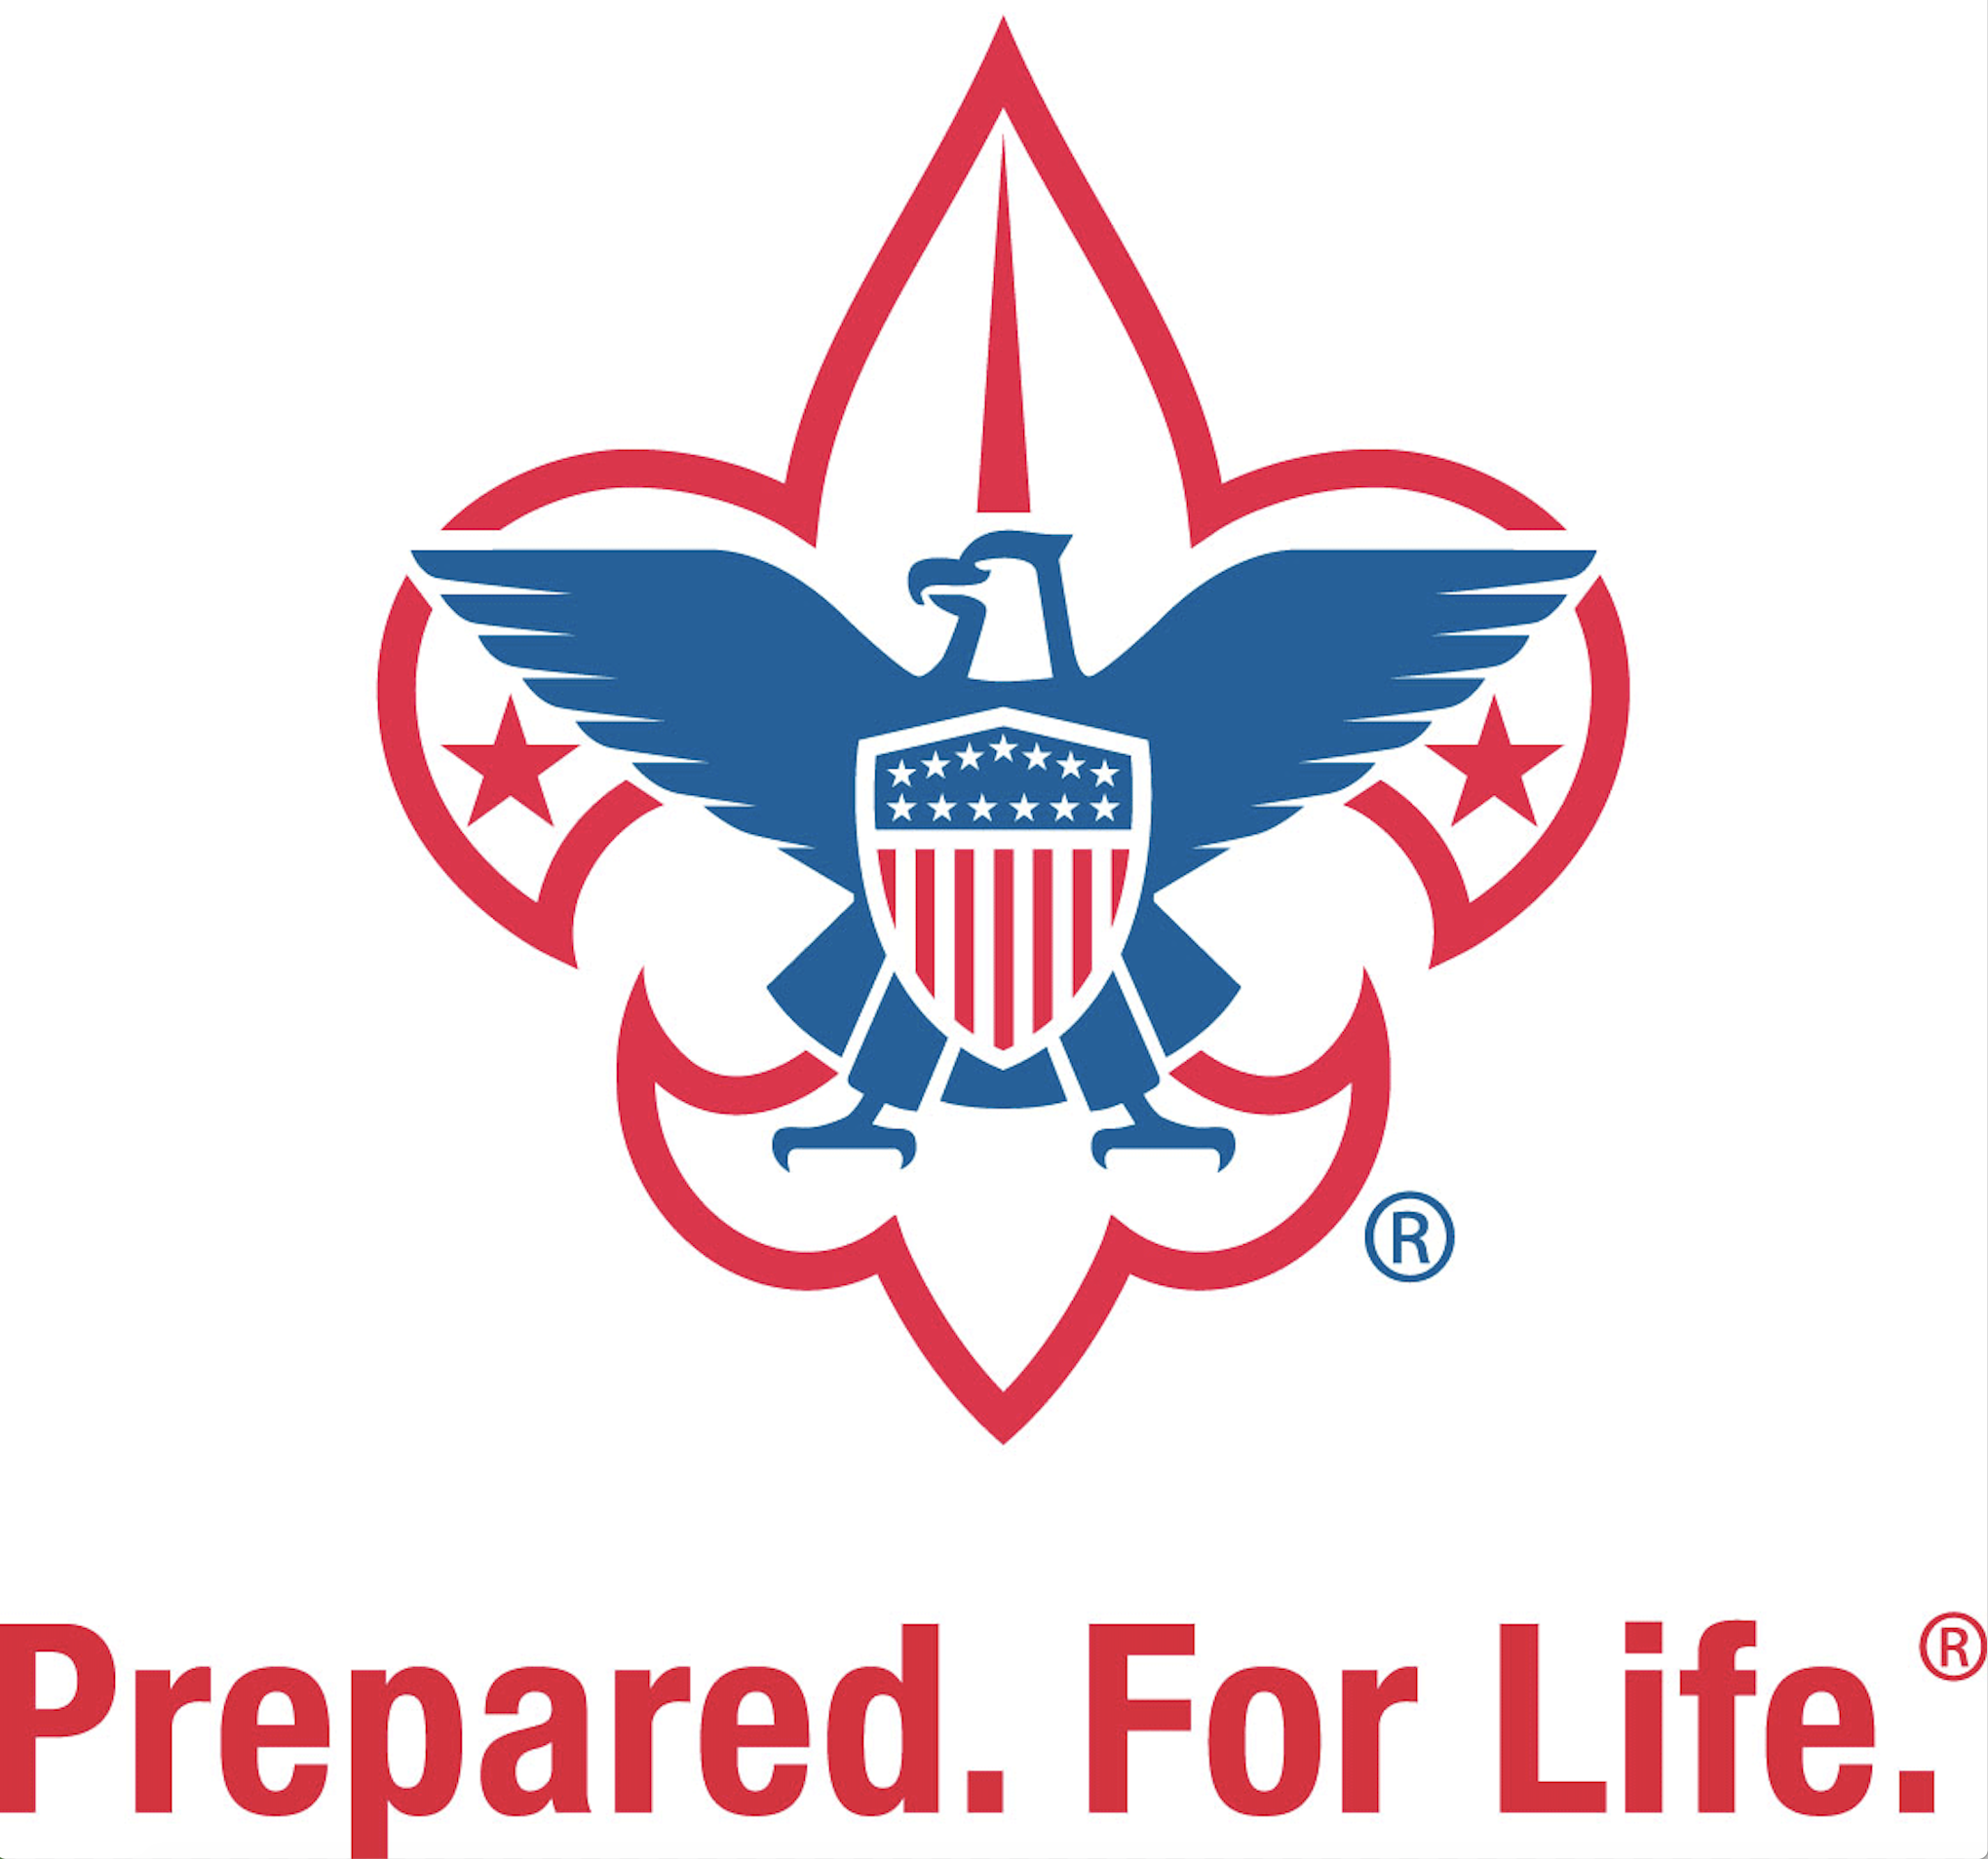 Boy scouts of america kaleidoscope discovery center we are excited and proud to be able to work with the boy scouts of america to offer merit badge and nova awards programs in rolla biocorpaavc